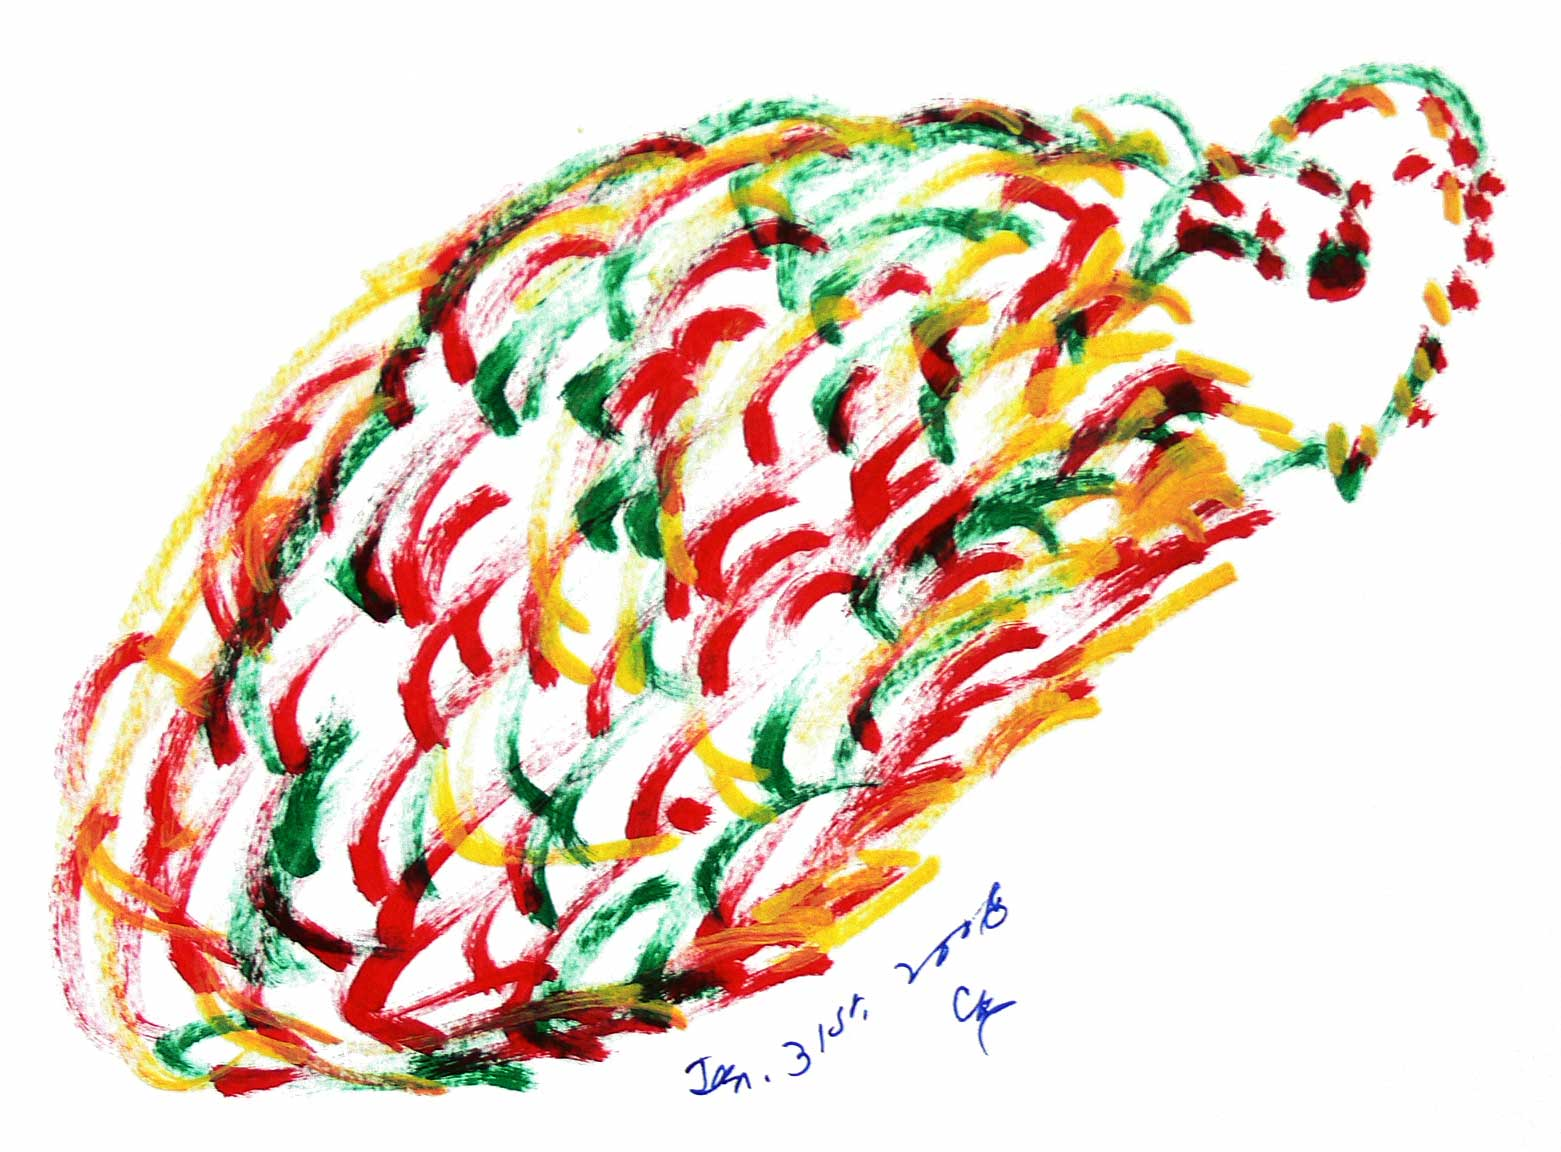 Bird-Drawing-by-Sri-Chinmoy-31-1-2006-7